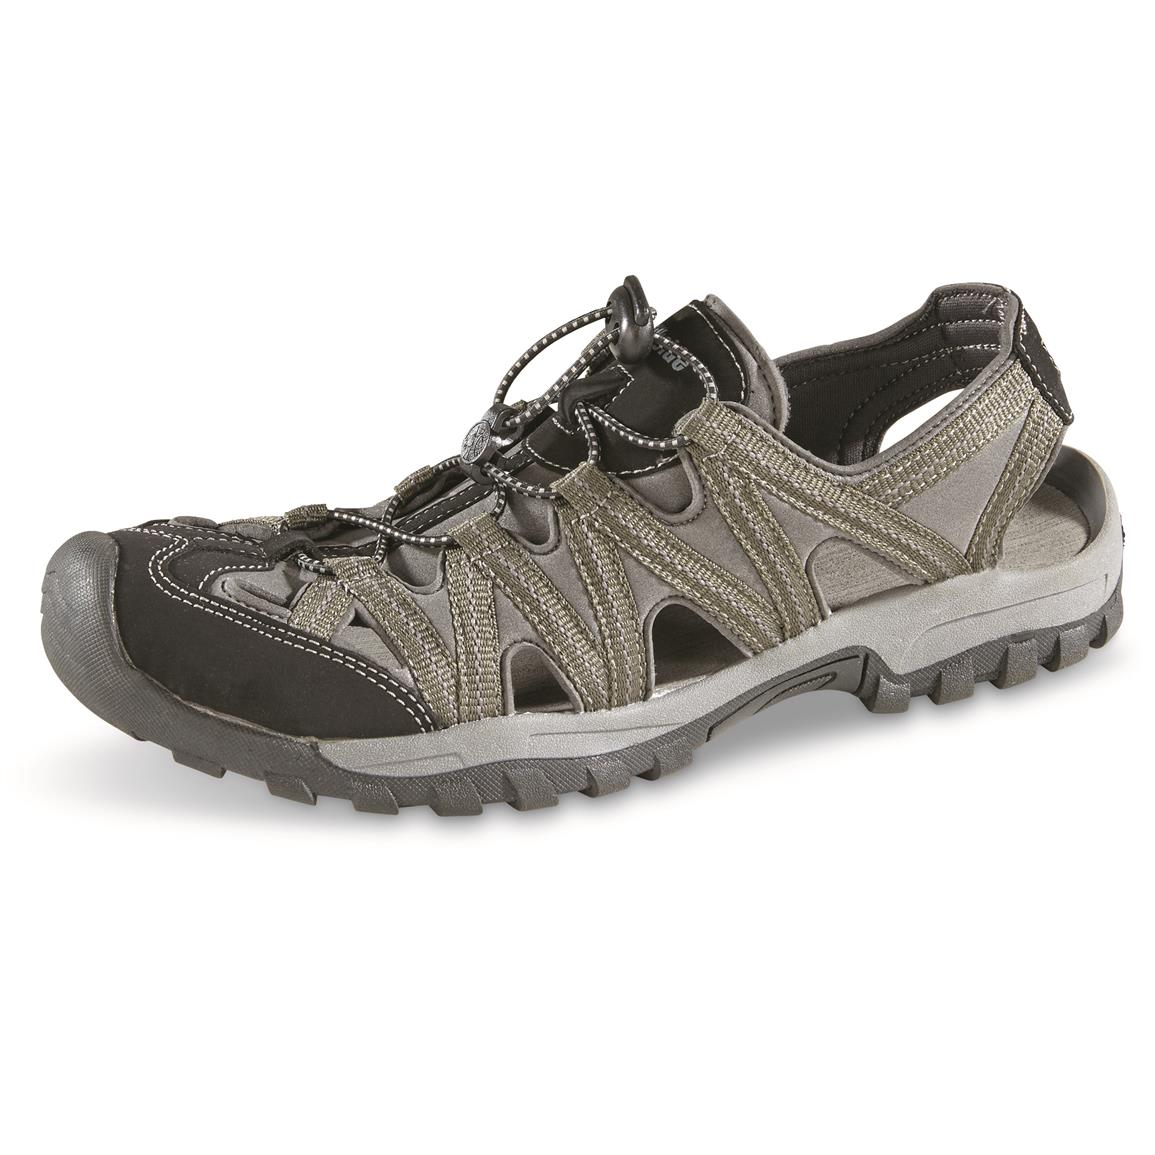 Northside Men's Santa Cruz Sandals, Dark Olive